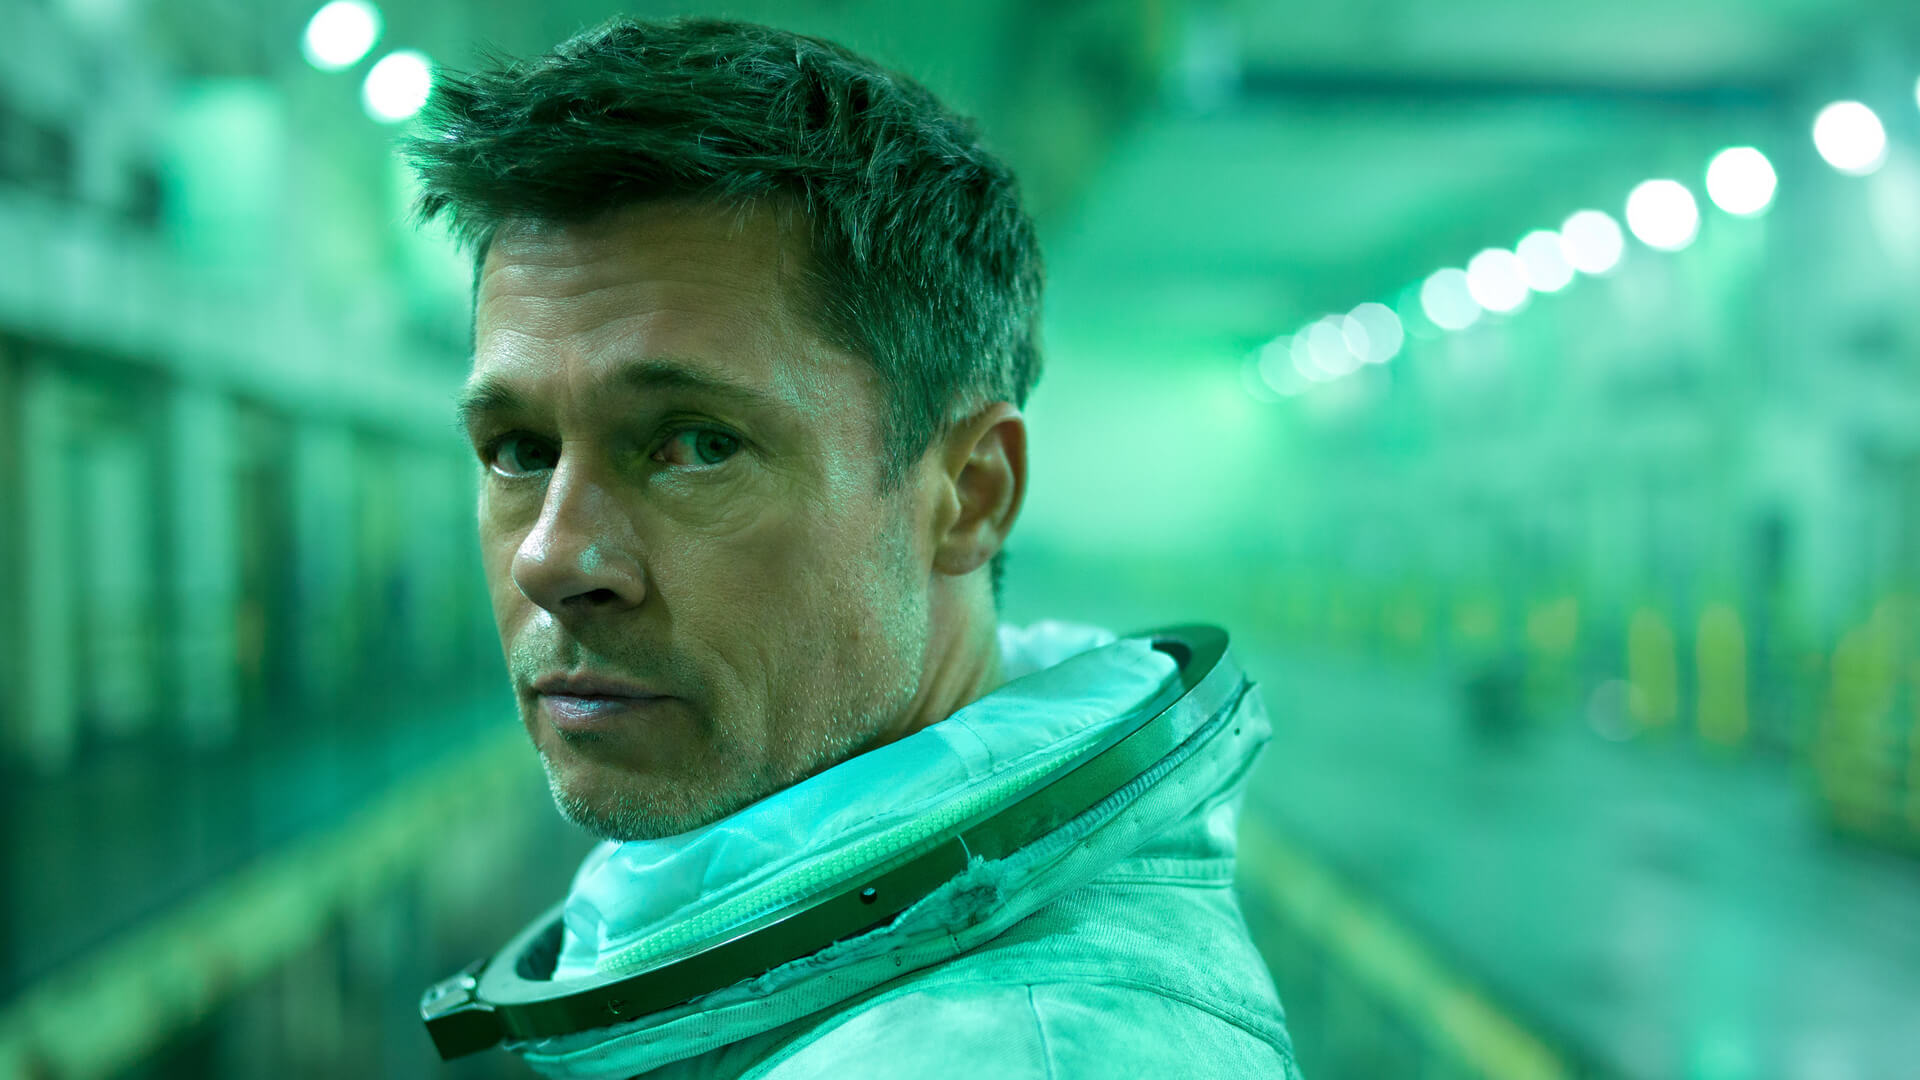 Ad Astra Review: Brad Pitt's Space Odyssey